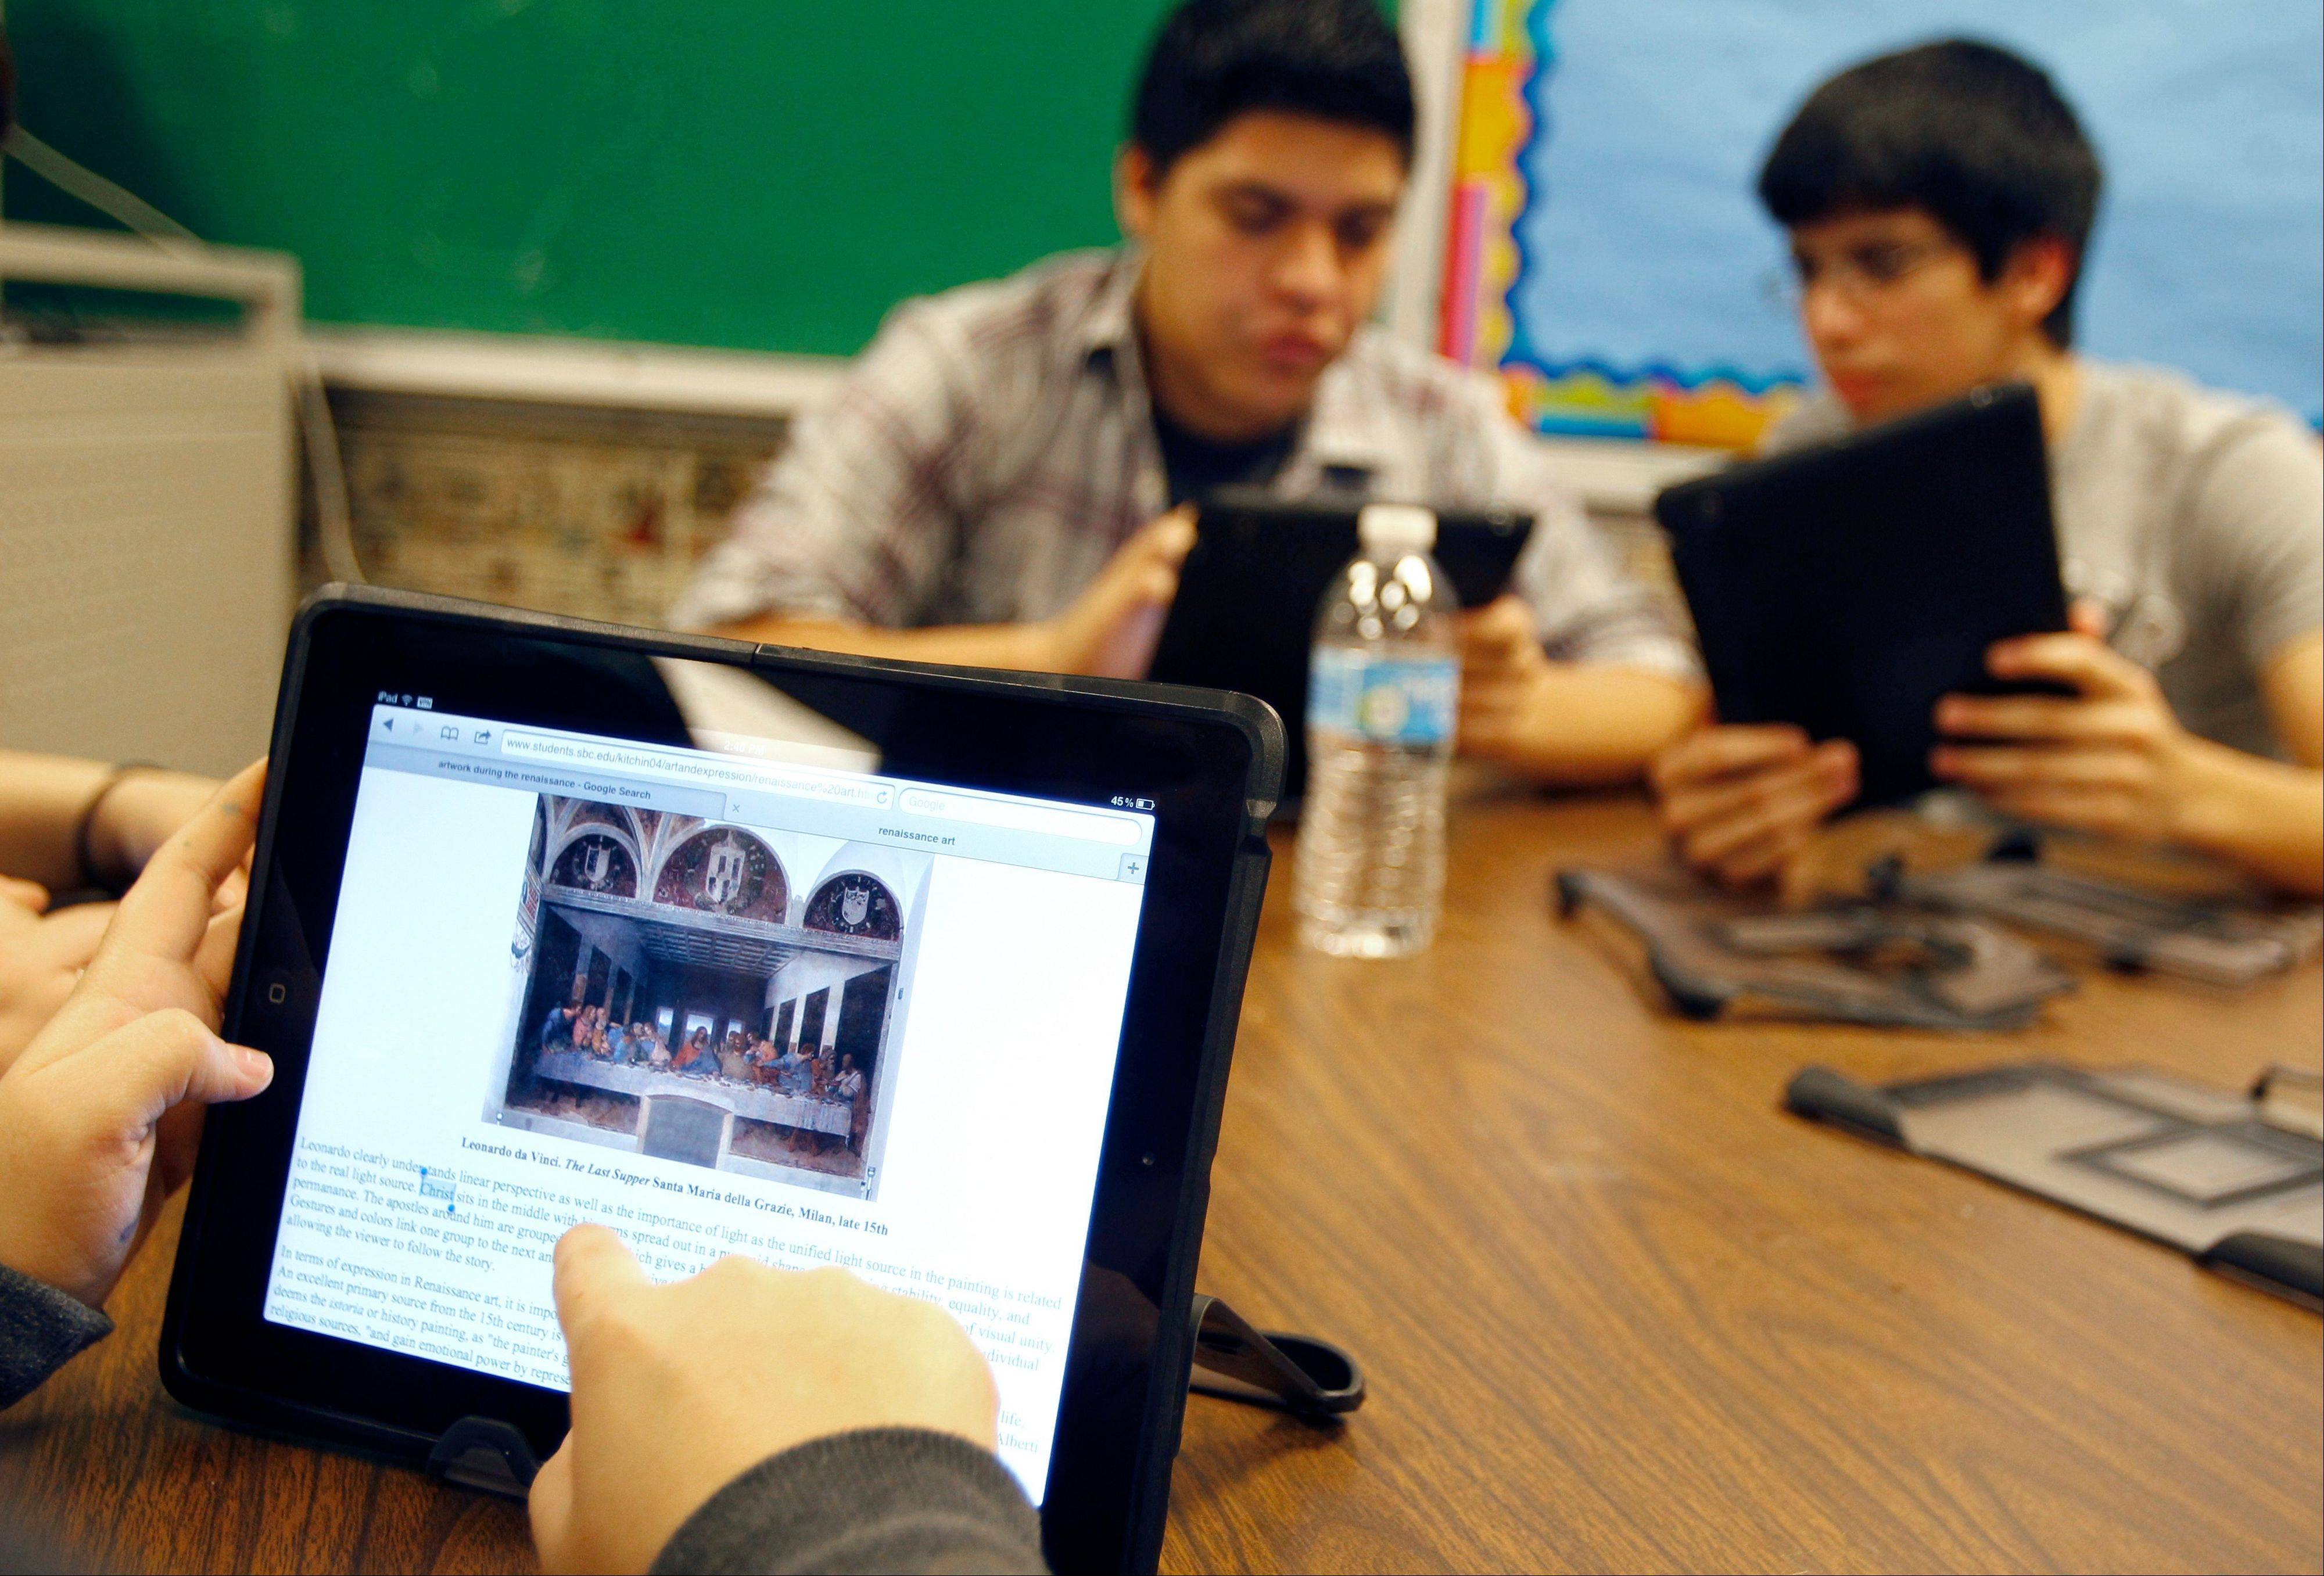 Ysabella Ortegon, 16, reads about Leonardo da Vinci�s painting �The Last Supper,� while working on her new iPad at McAllen Memorial High School in McAllen, Texas.